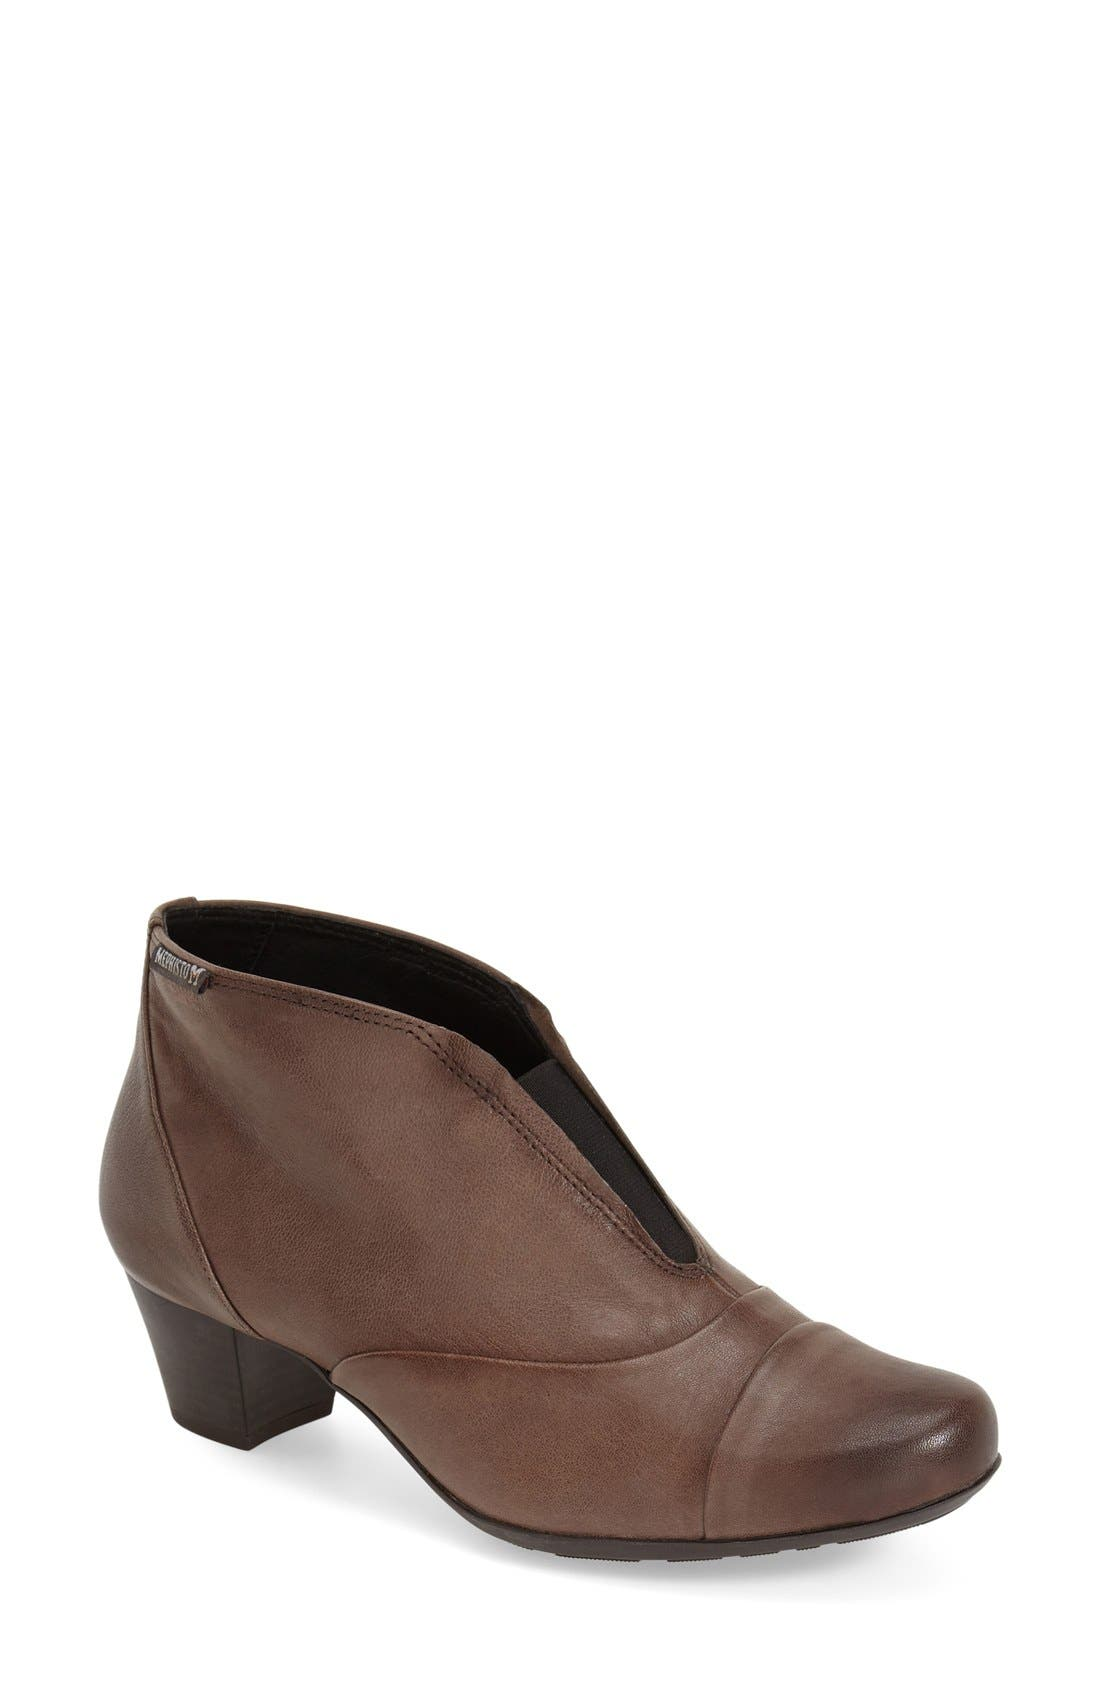 'Maddie' Bootie,                         Main,                         color, Dark Taupe Nappa